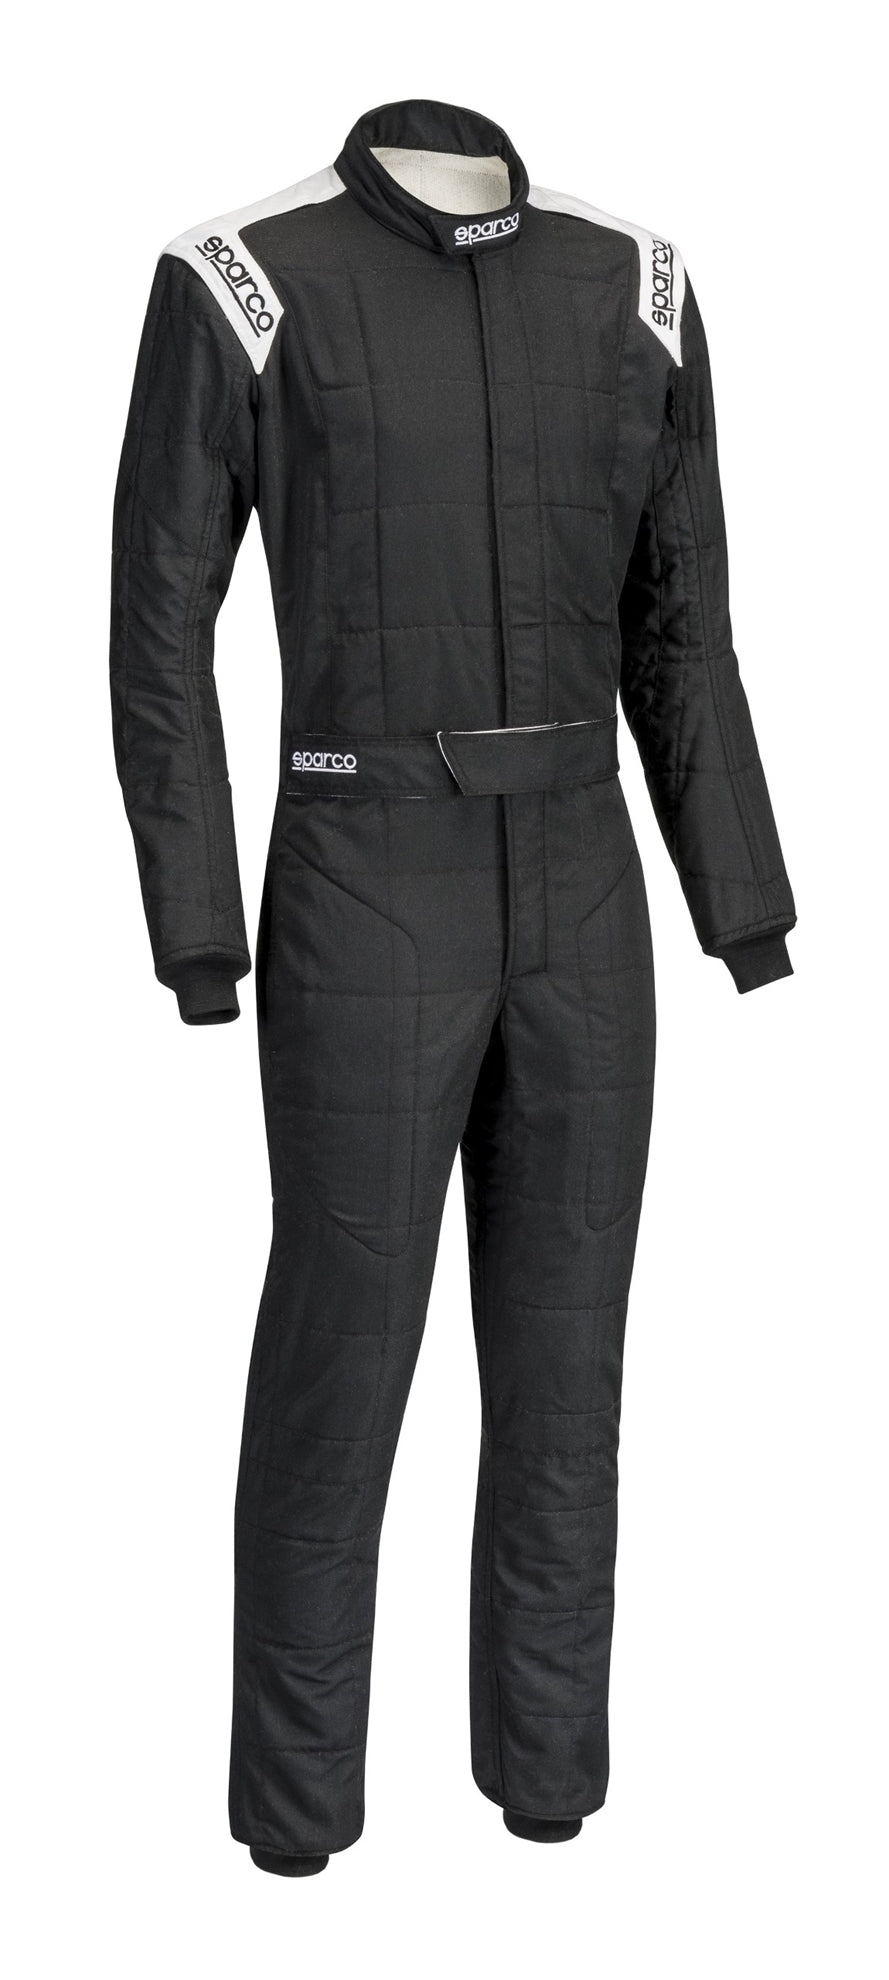 SPARCO Conquest 2.0 Driver Racing Fire Suit [FIA & SFI approved] Standard or Boot Cuff